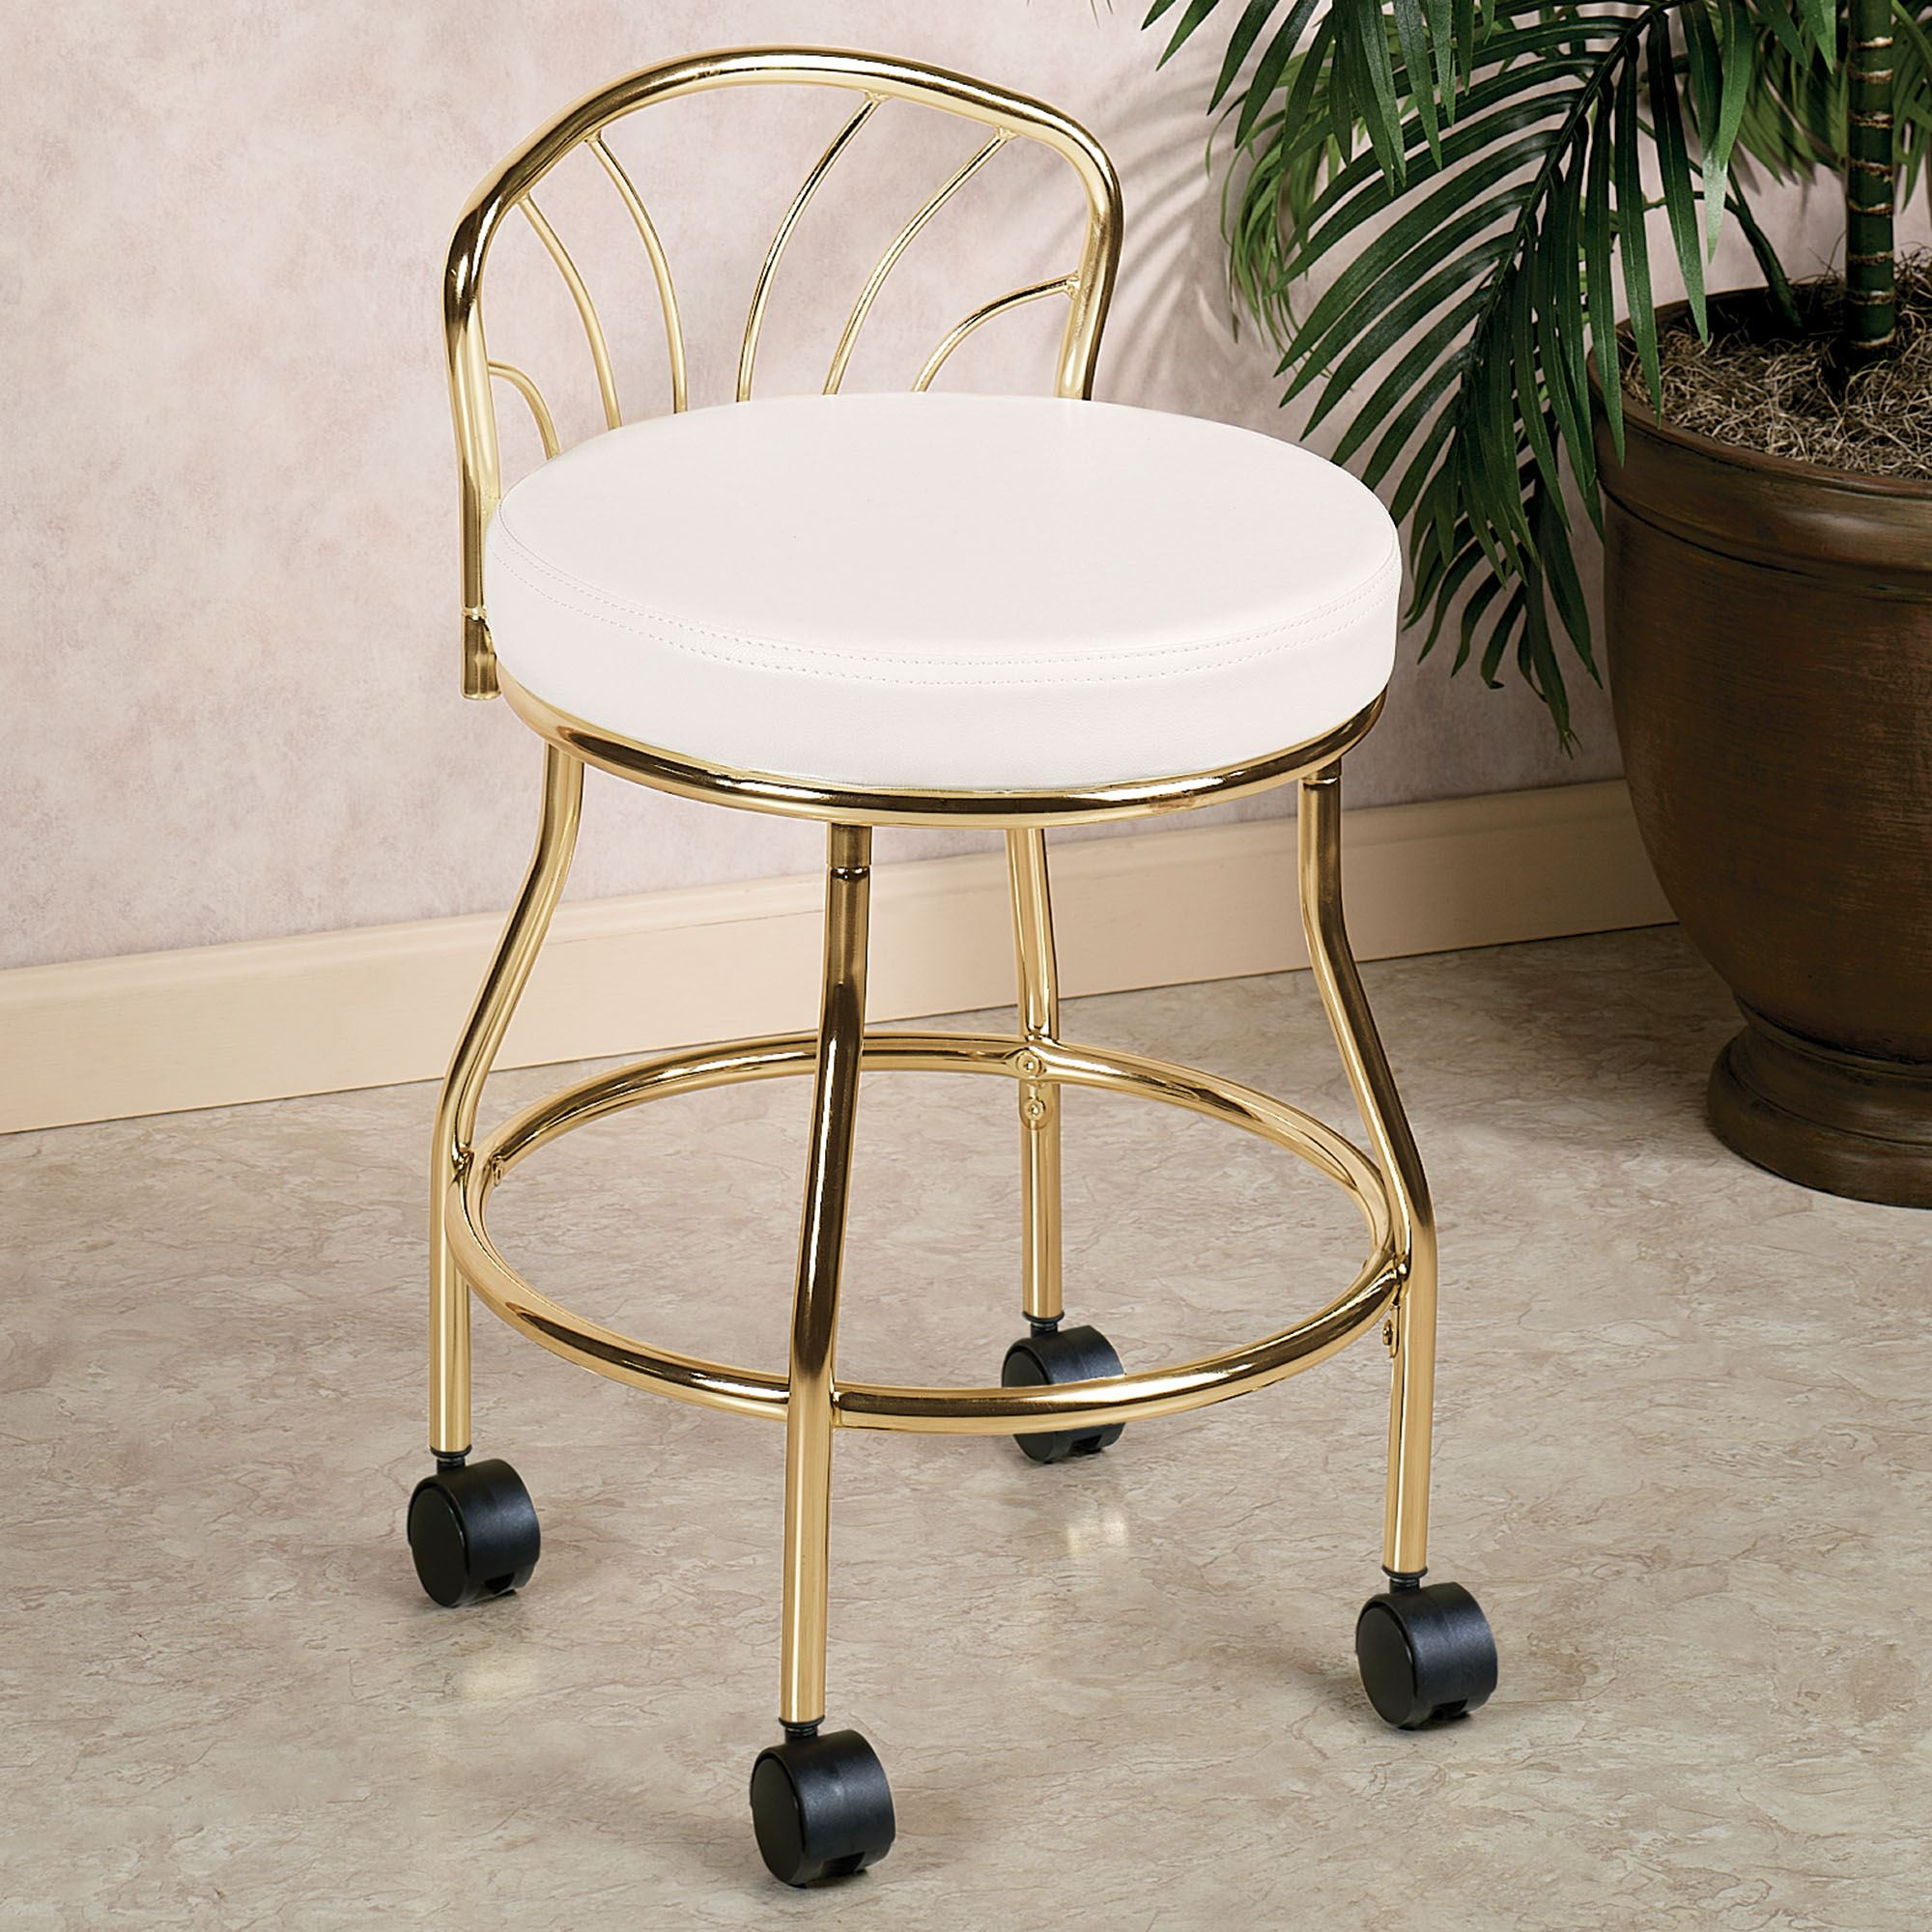 bathroom vanity chairs pottery barn kitchen flare back metallic finish chair with casters touch to zoom